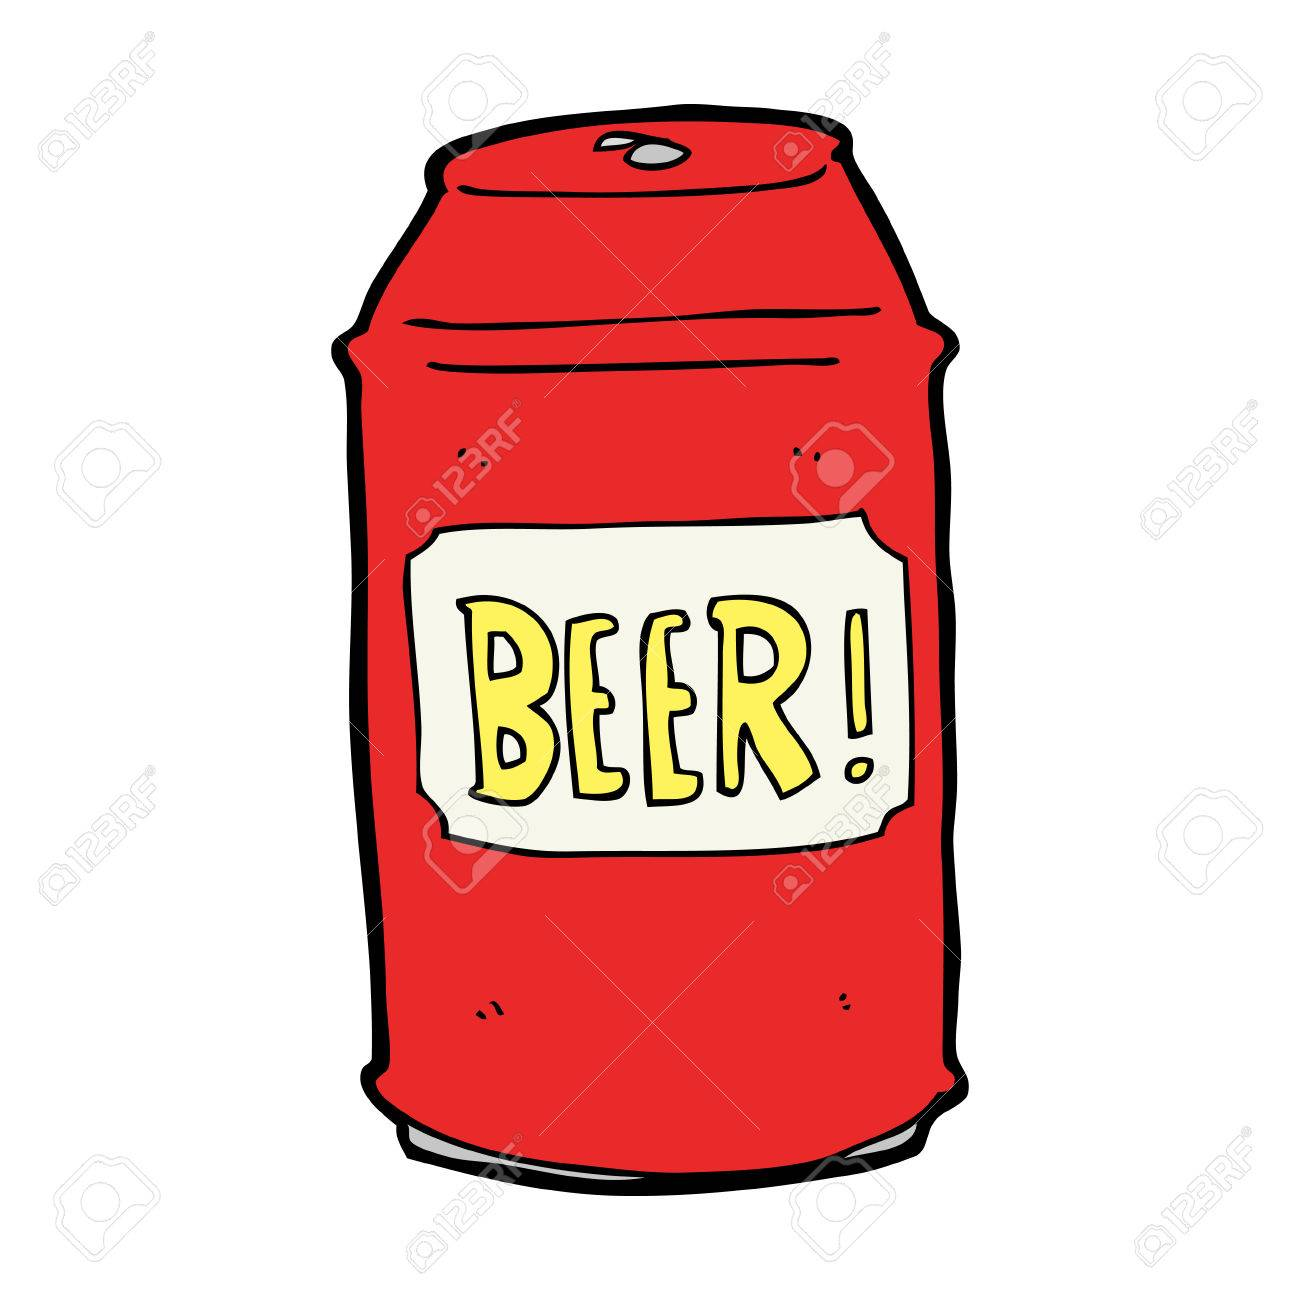 1300x1300 Beer Can Clipart 27865193 Cartoon Beer Can